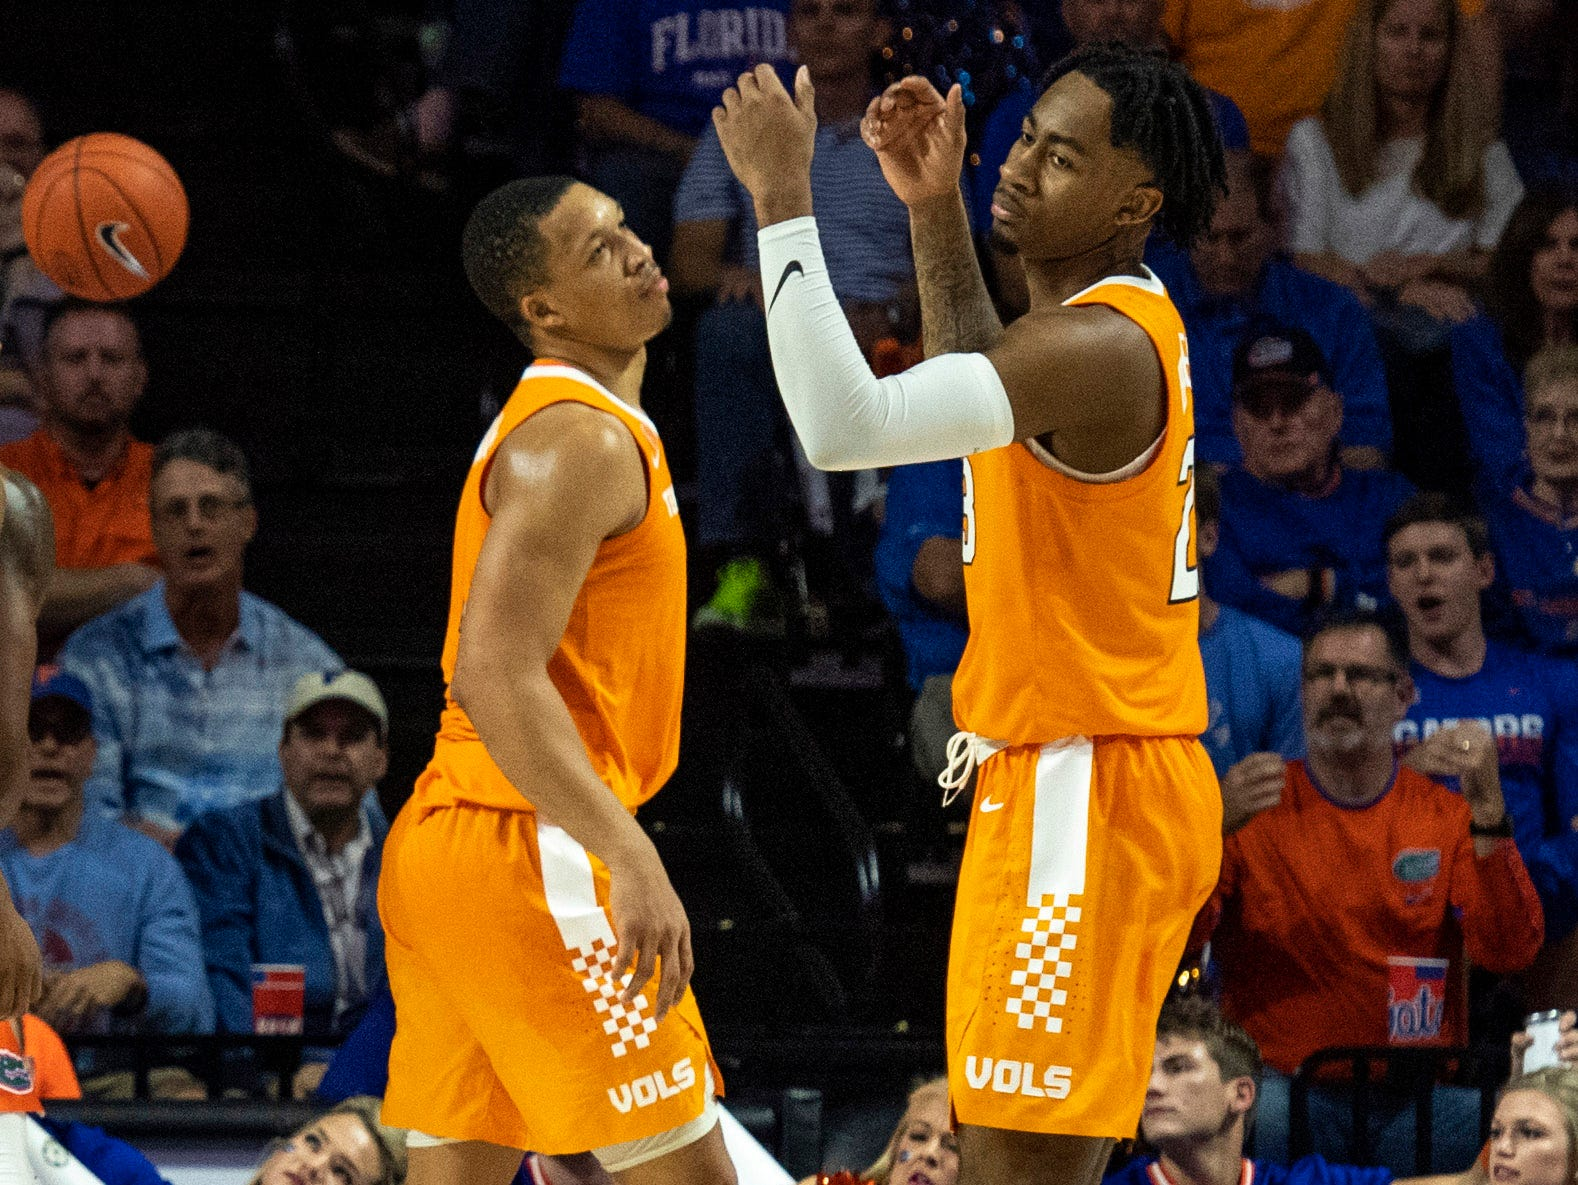 Tennessee Volunteers guard Jordan Bowden (23) and forward Grant Williams (2) react during the second half against the Florida Gators  on Jan. 12, 2019.